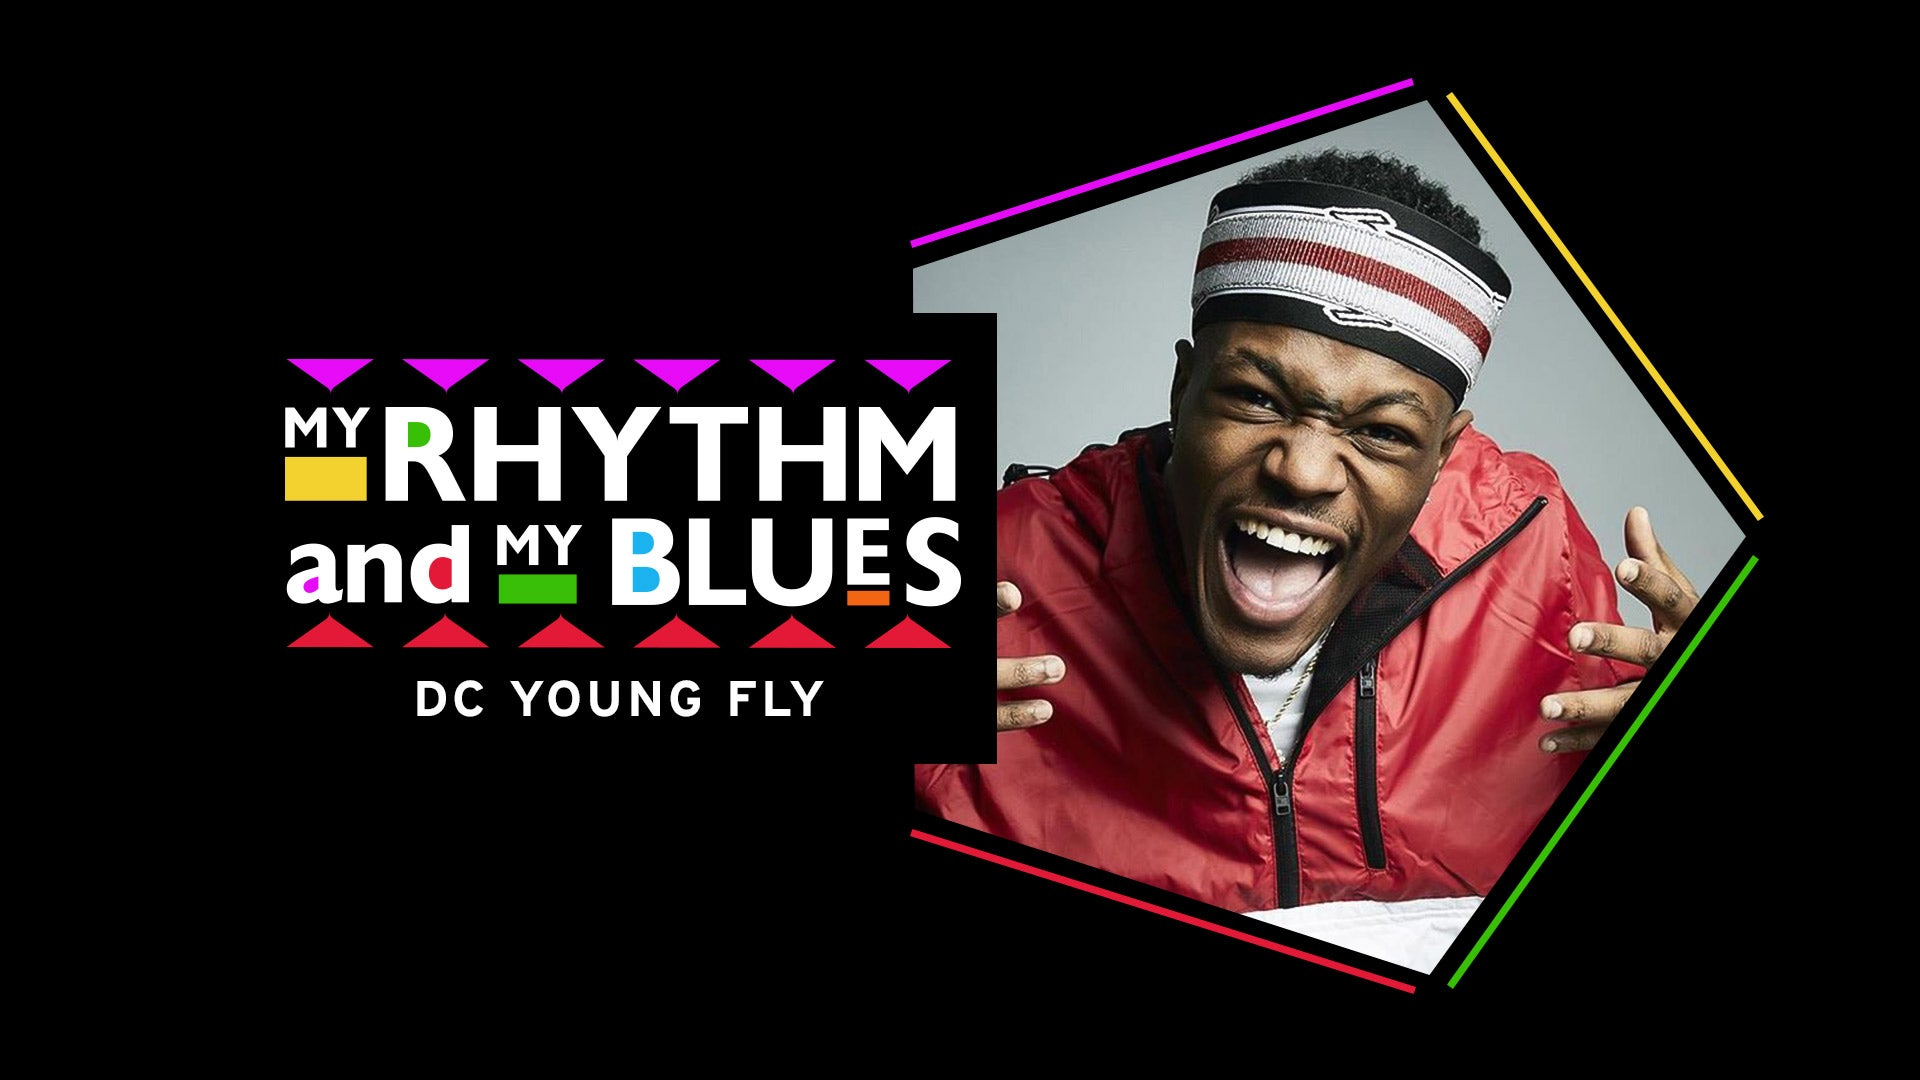 My Rhythm and My Blues: DC Young Fly